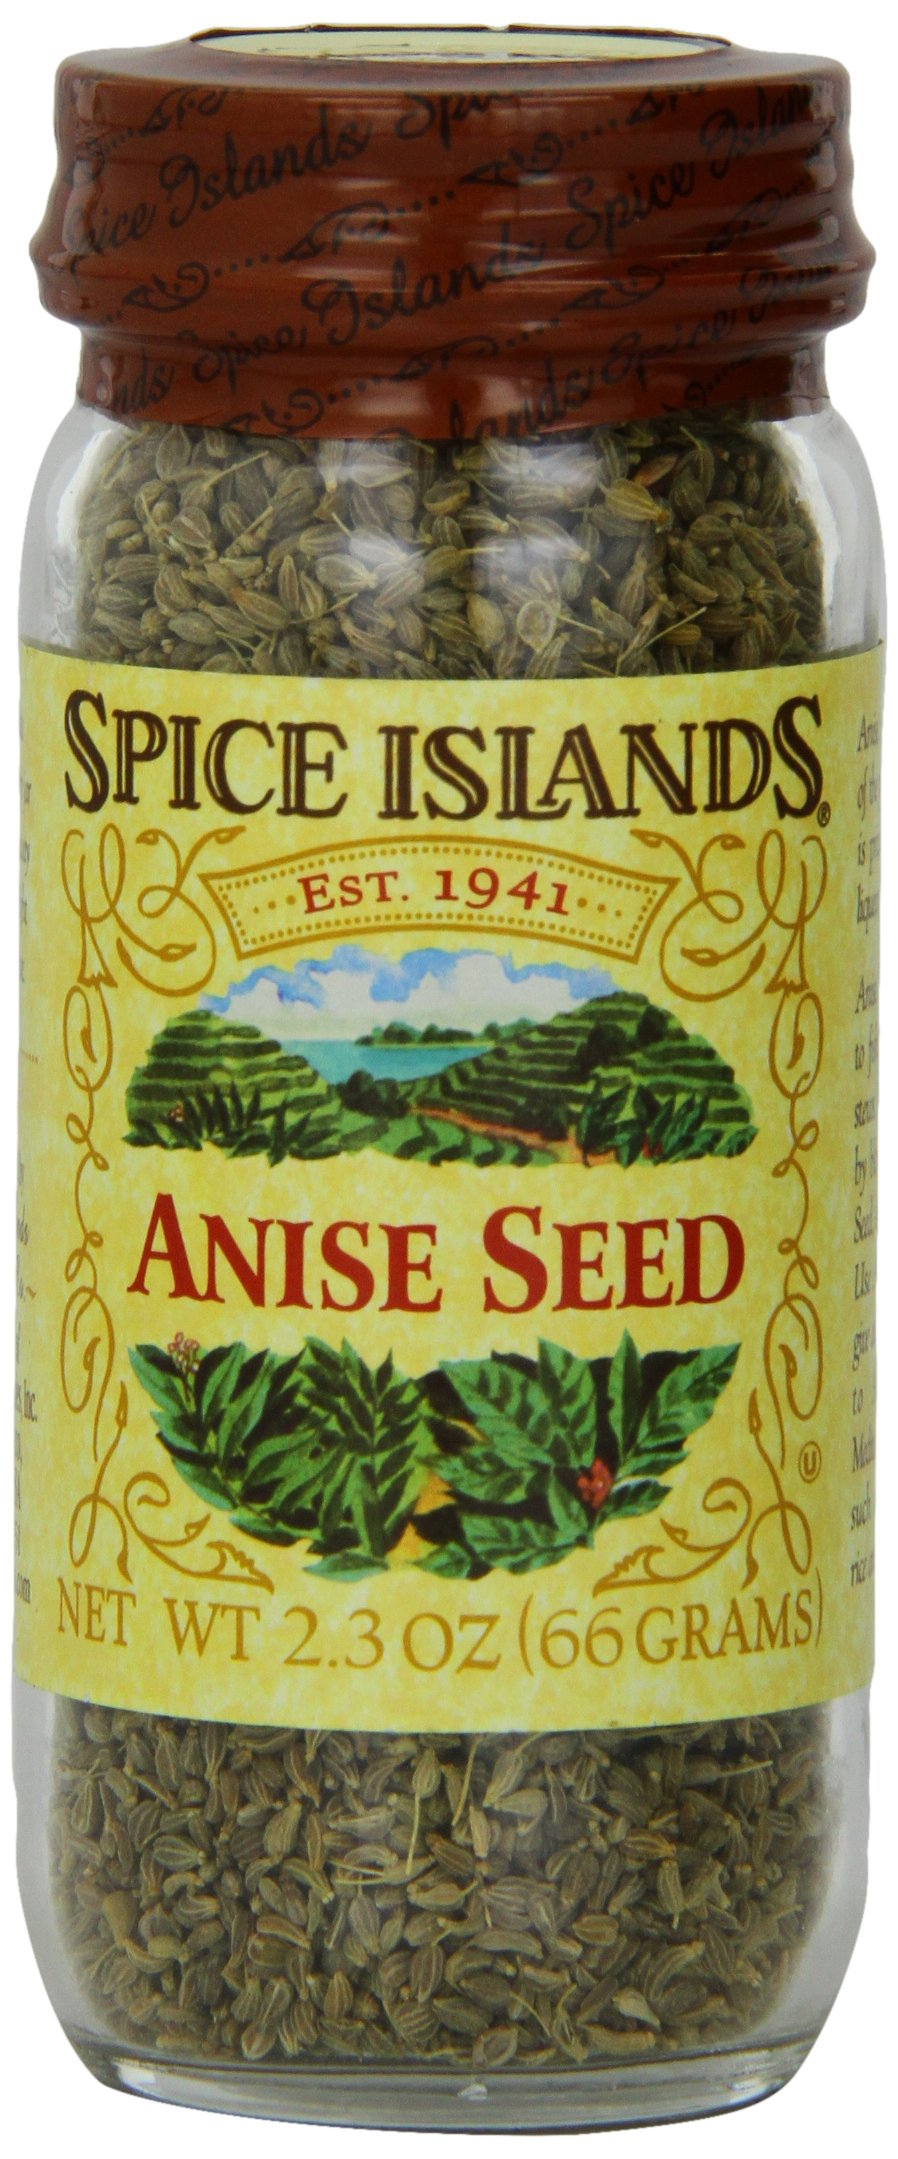 Spice Islands Anise Seed, Whole, 2.3-Ounce (Pack of 3)